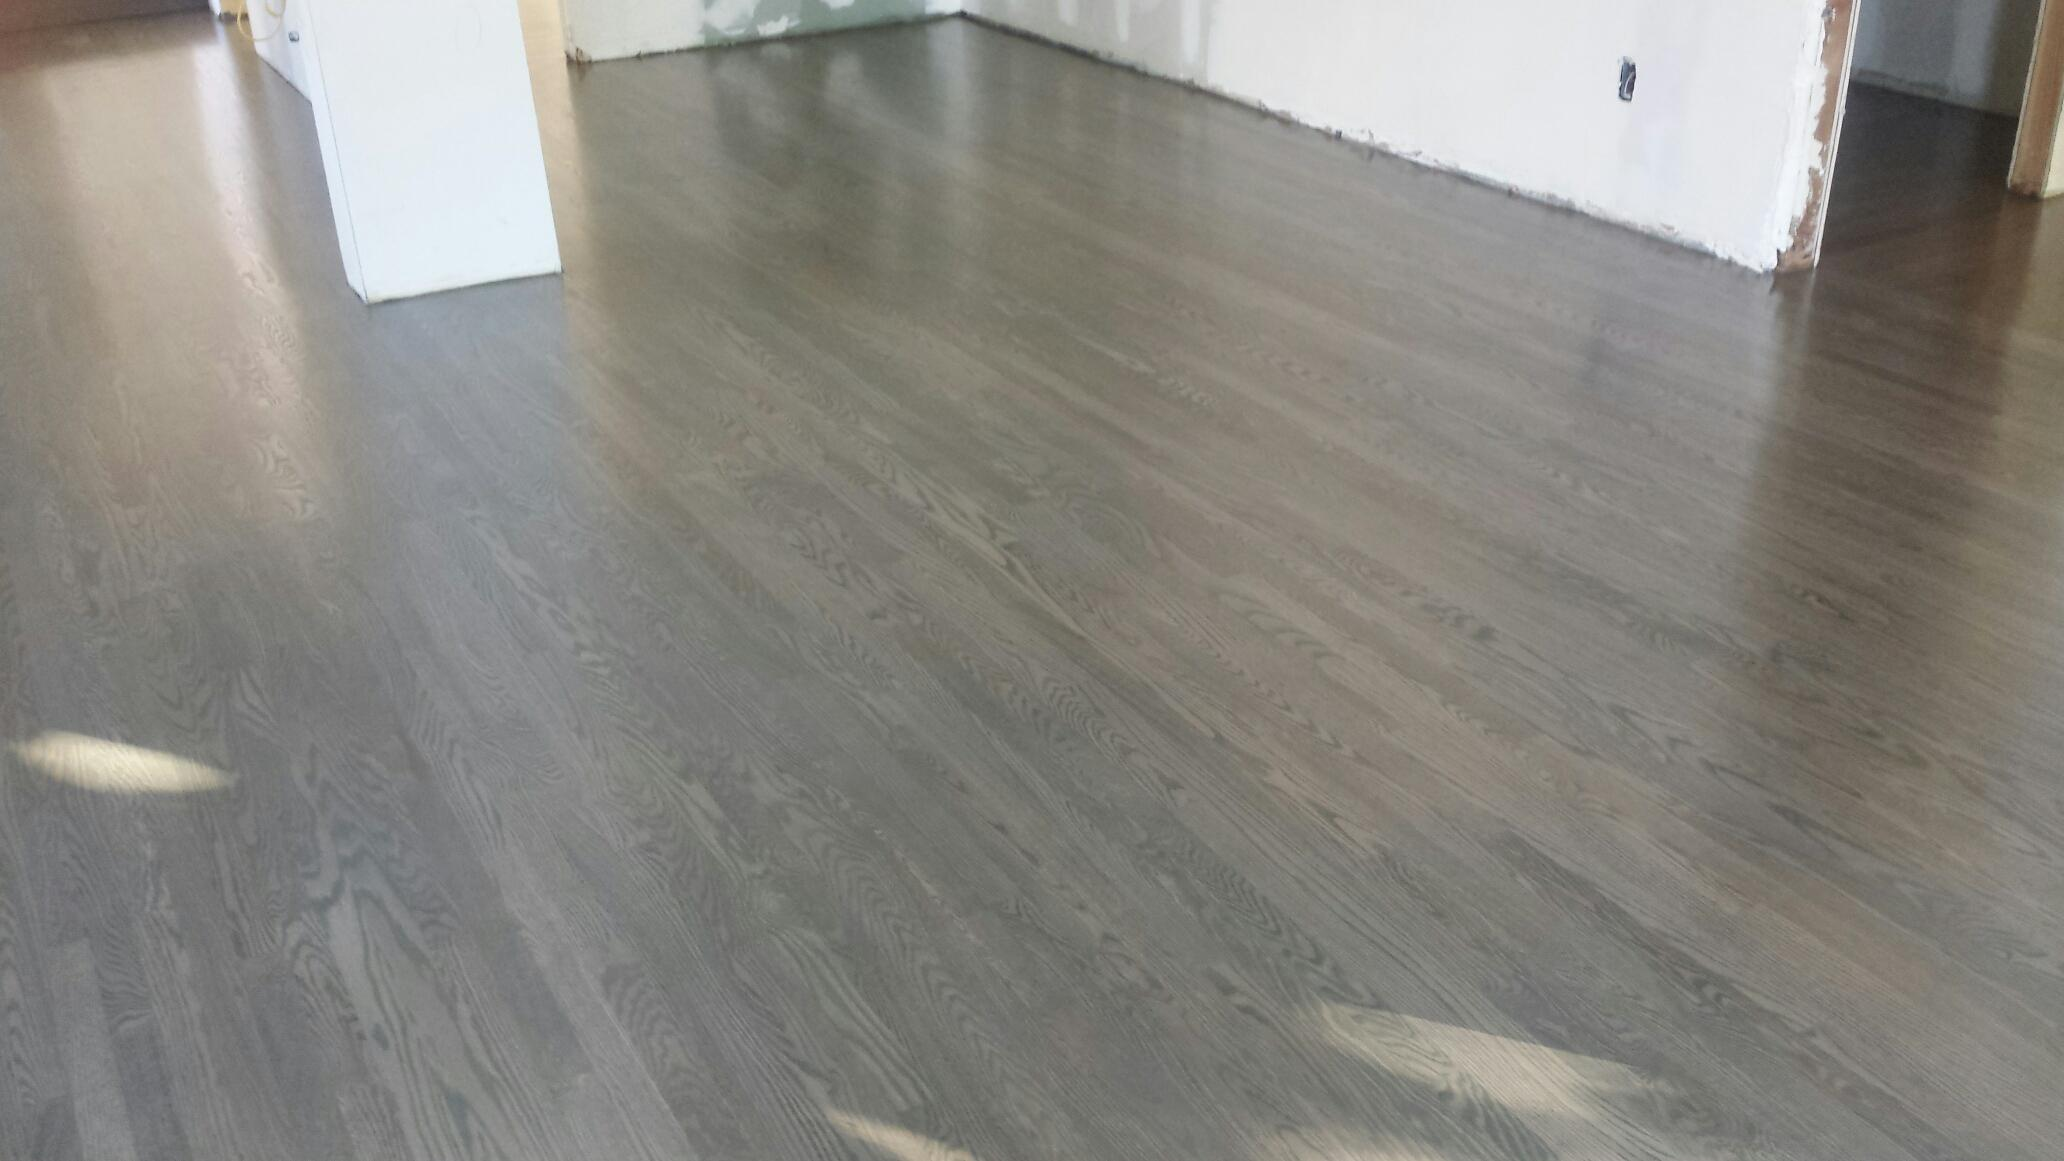 Oak Flooring sanded and stain with grey color and finish with 4 coats of satin polyurethane.